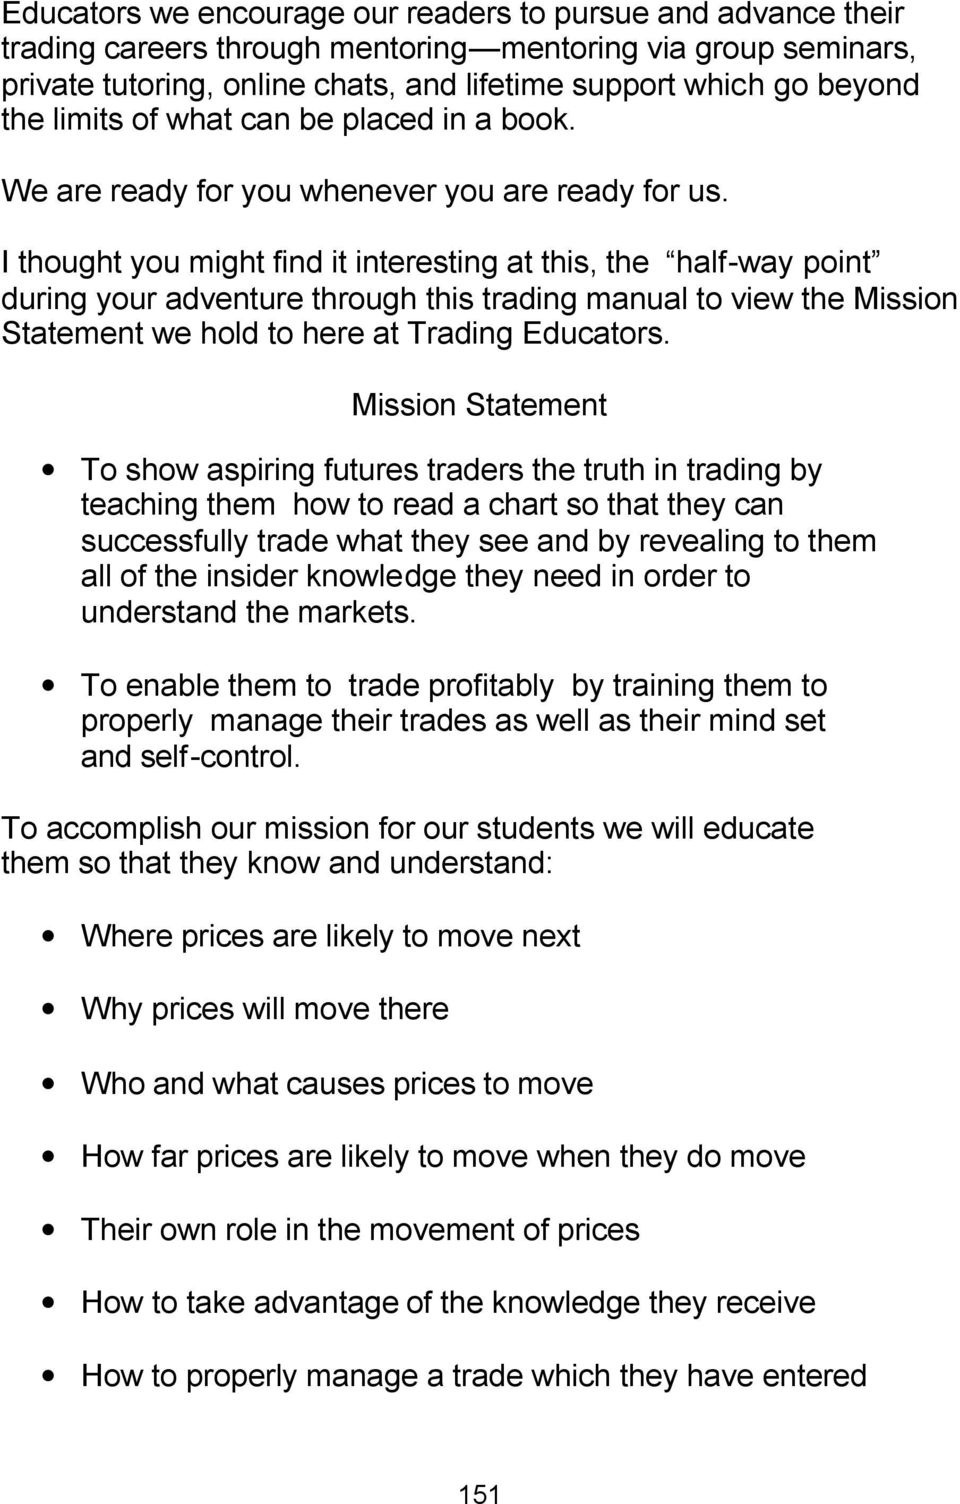 I thought you might find it interesting at this, the half-way point during your adventure through this trading manual to view the Mission Statement we hold to here at Trading Educators.